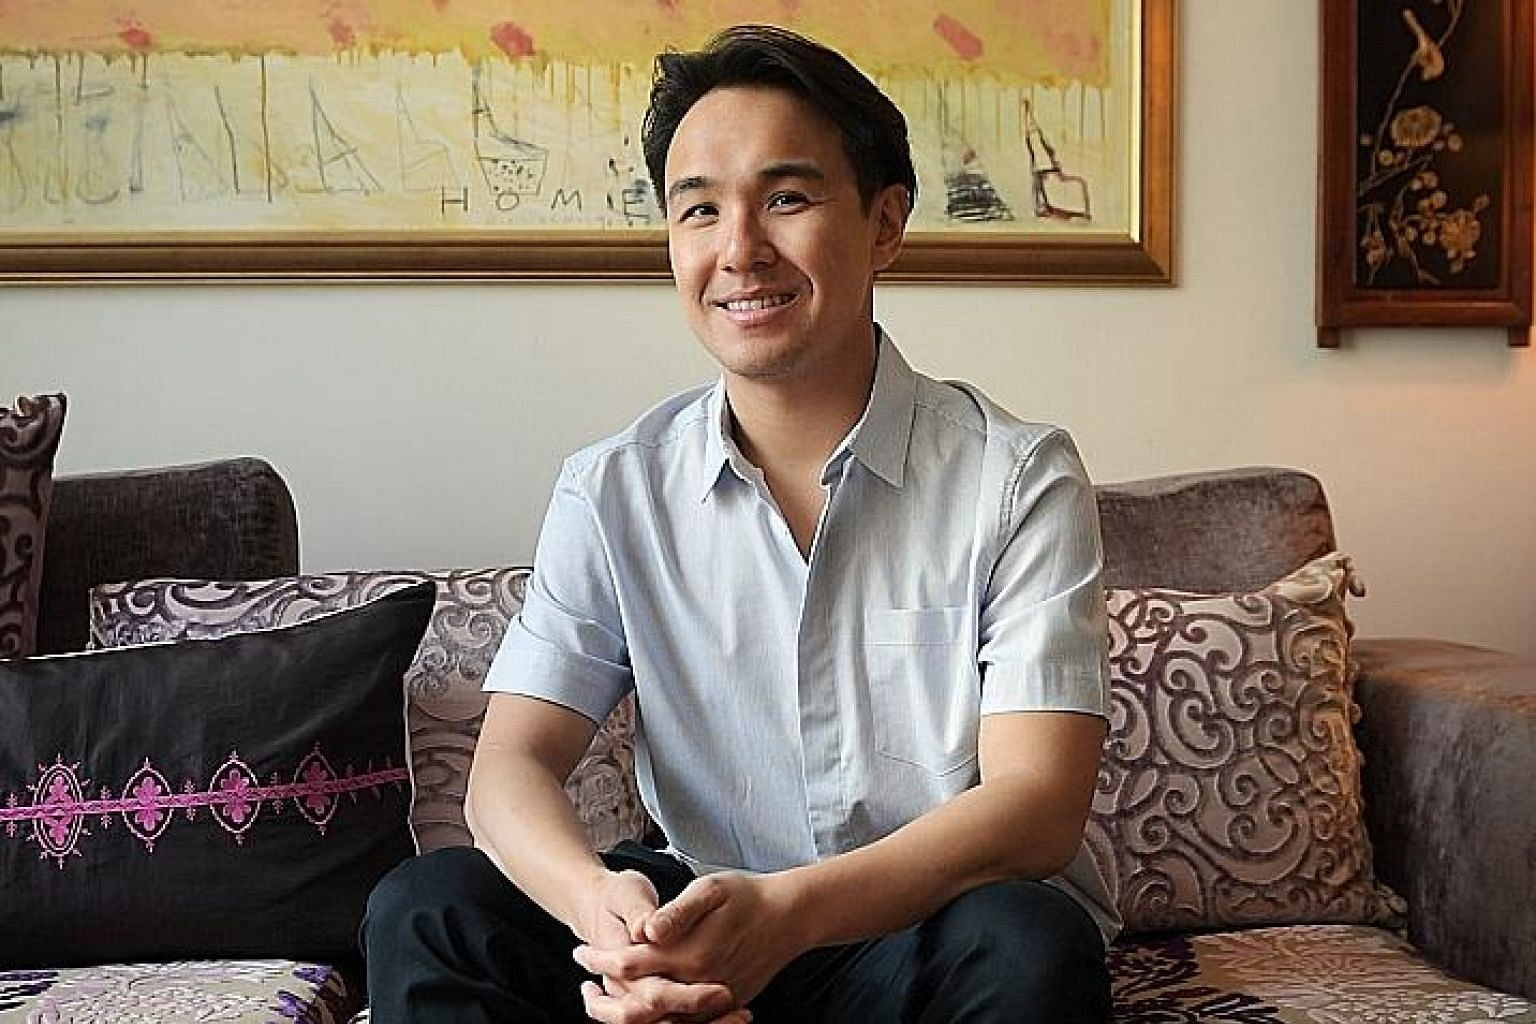 Mr Bryan Koh, who runs cake businesses Chalk Farm and Milk Moons, self-publishes his cookbooks. This gives him control over the text, photos and look of the books.